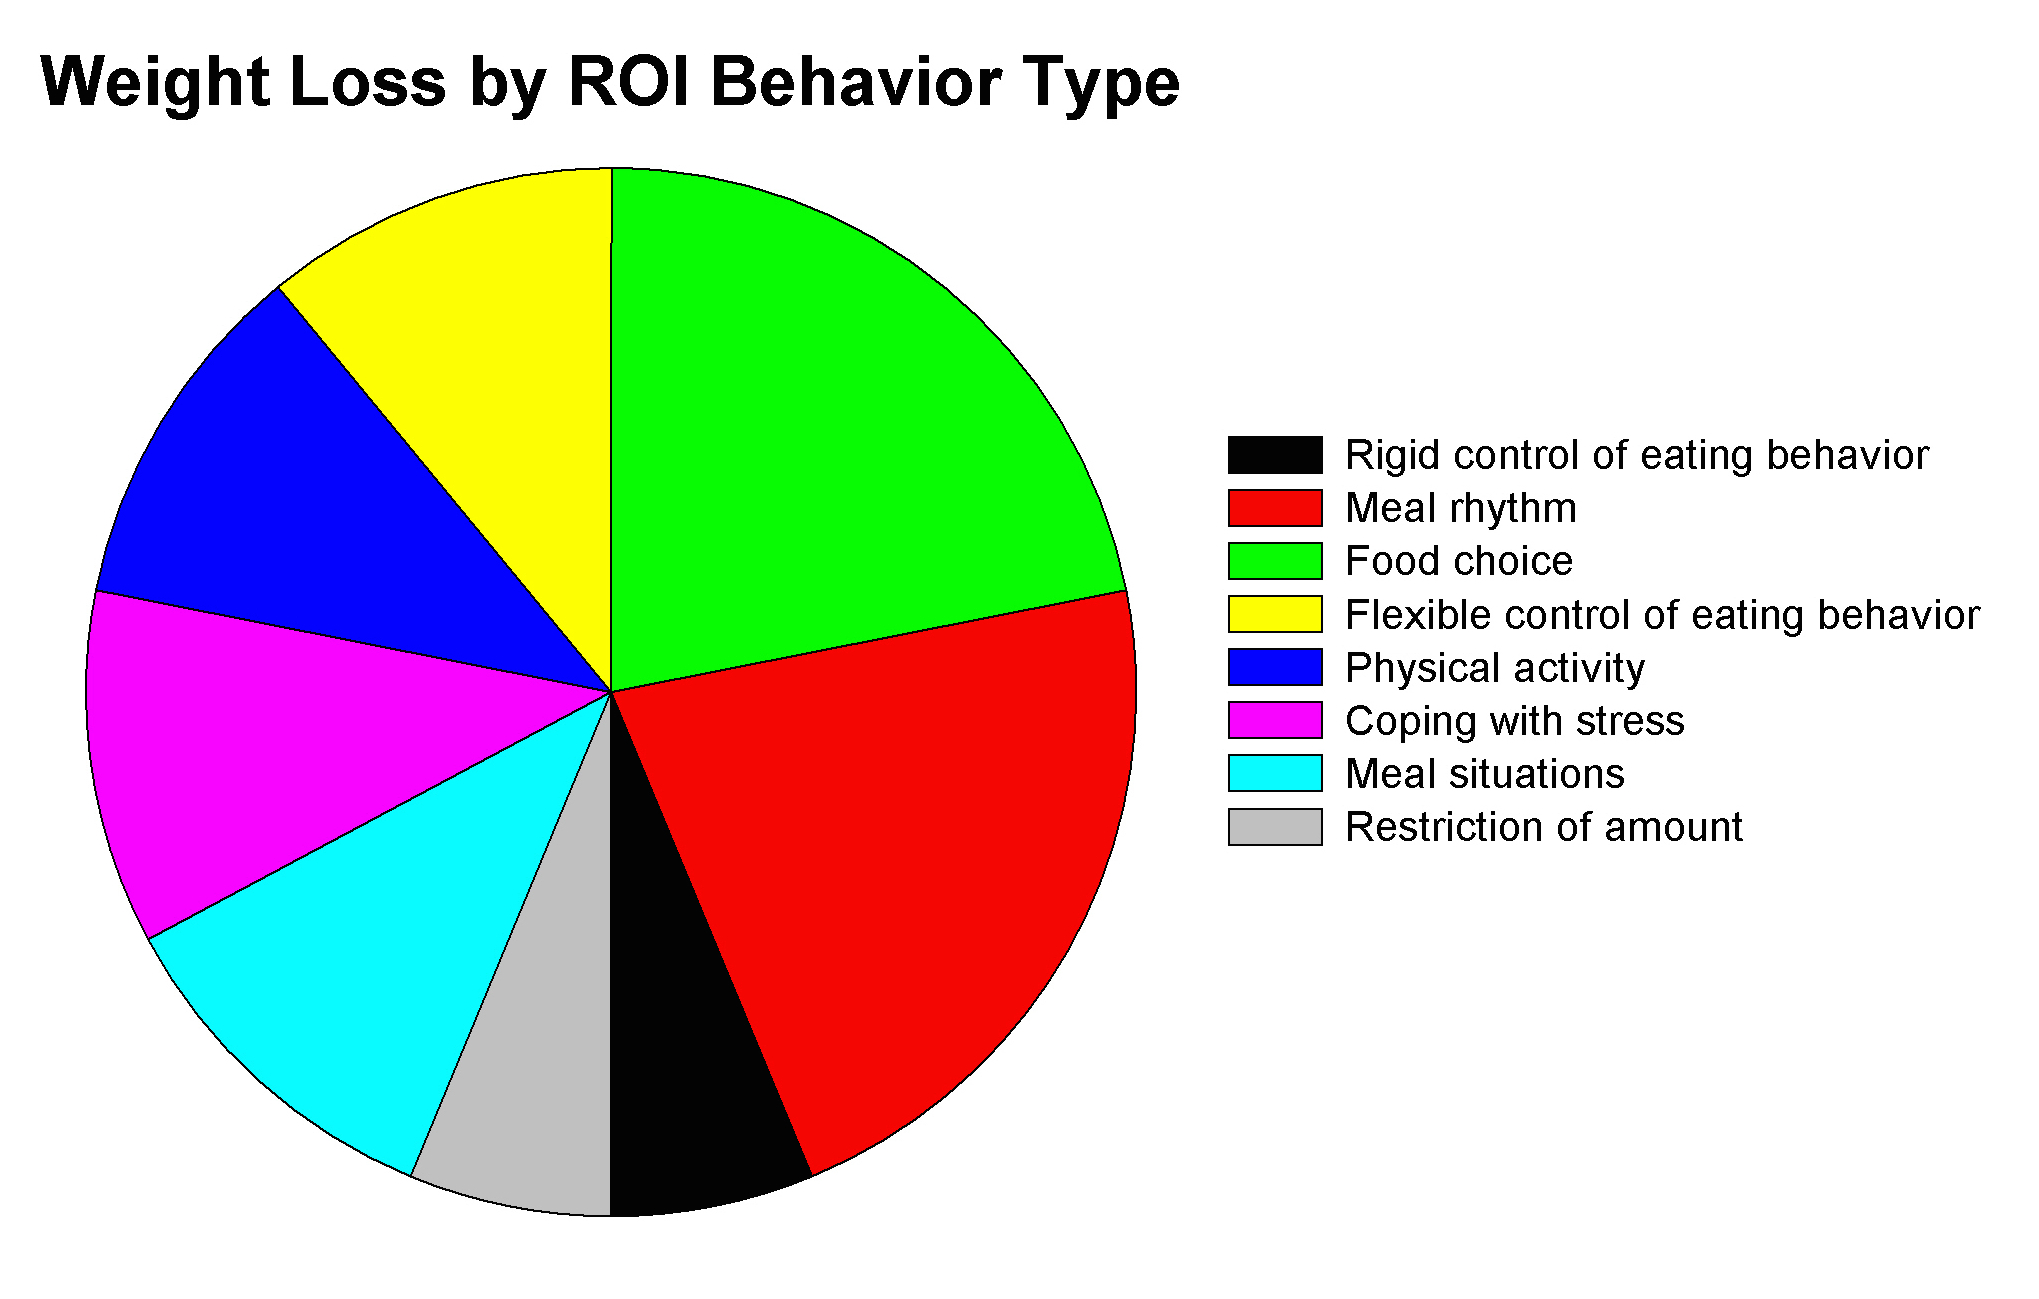 Contribution of Behavior Type to Weight Loss